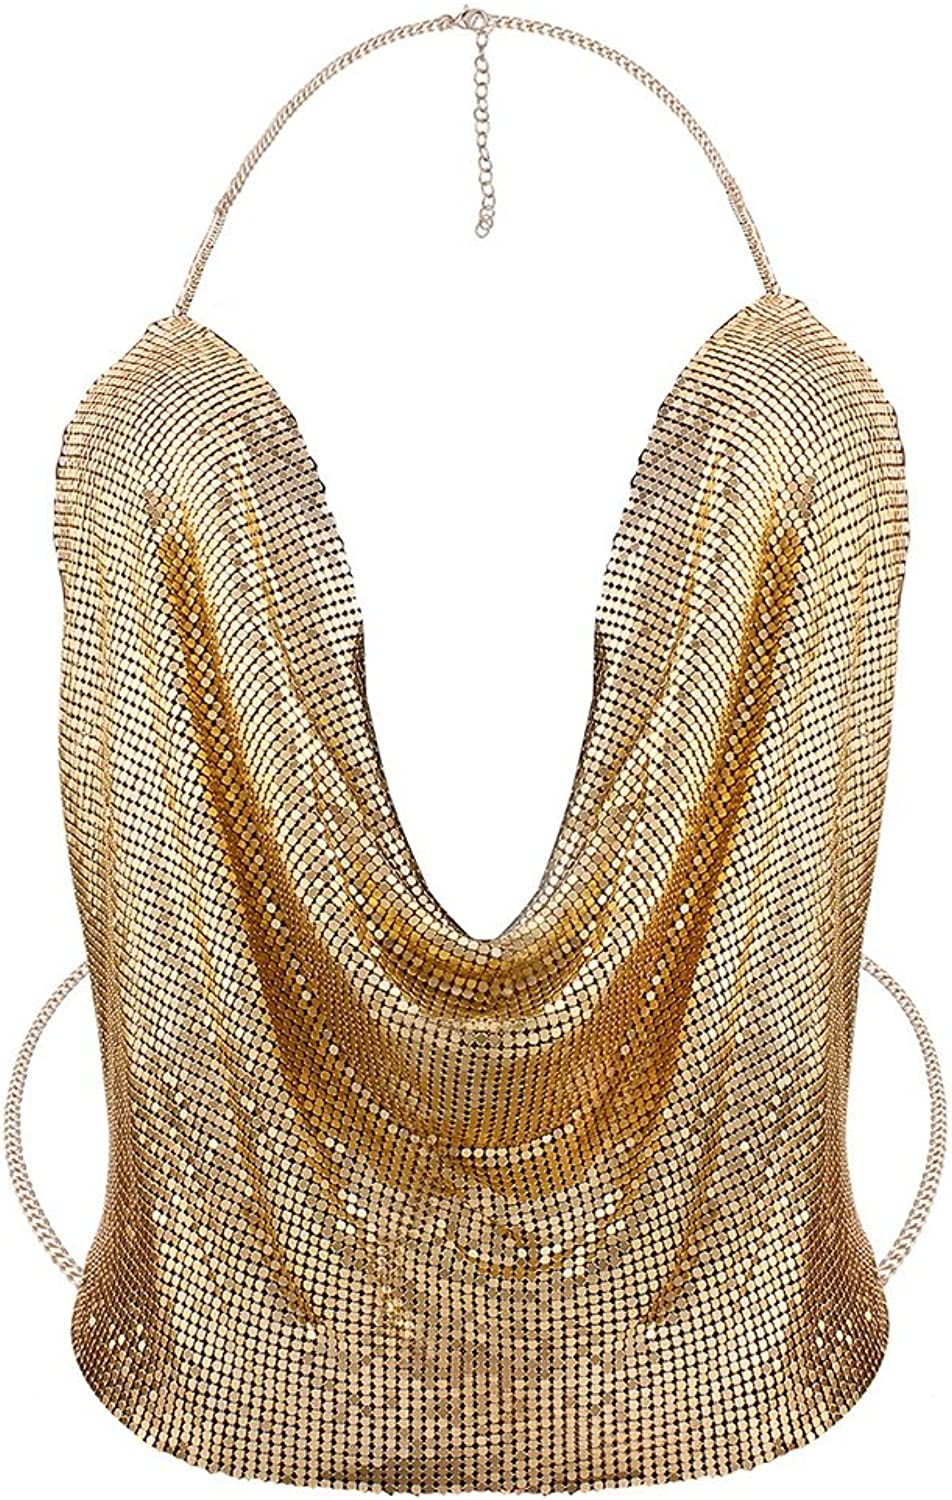 RYRYBH Women's Breast Chain Nightclub Full Diamond Chain Exaggerated Jewelry Punk Fashion Open Back Chain Jewelry Alloy Sequined Jacket Daily Wear Female Accessories (color   gold)